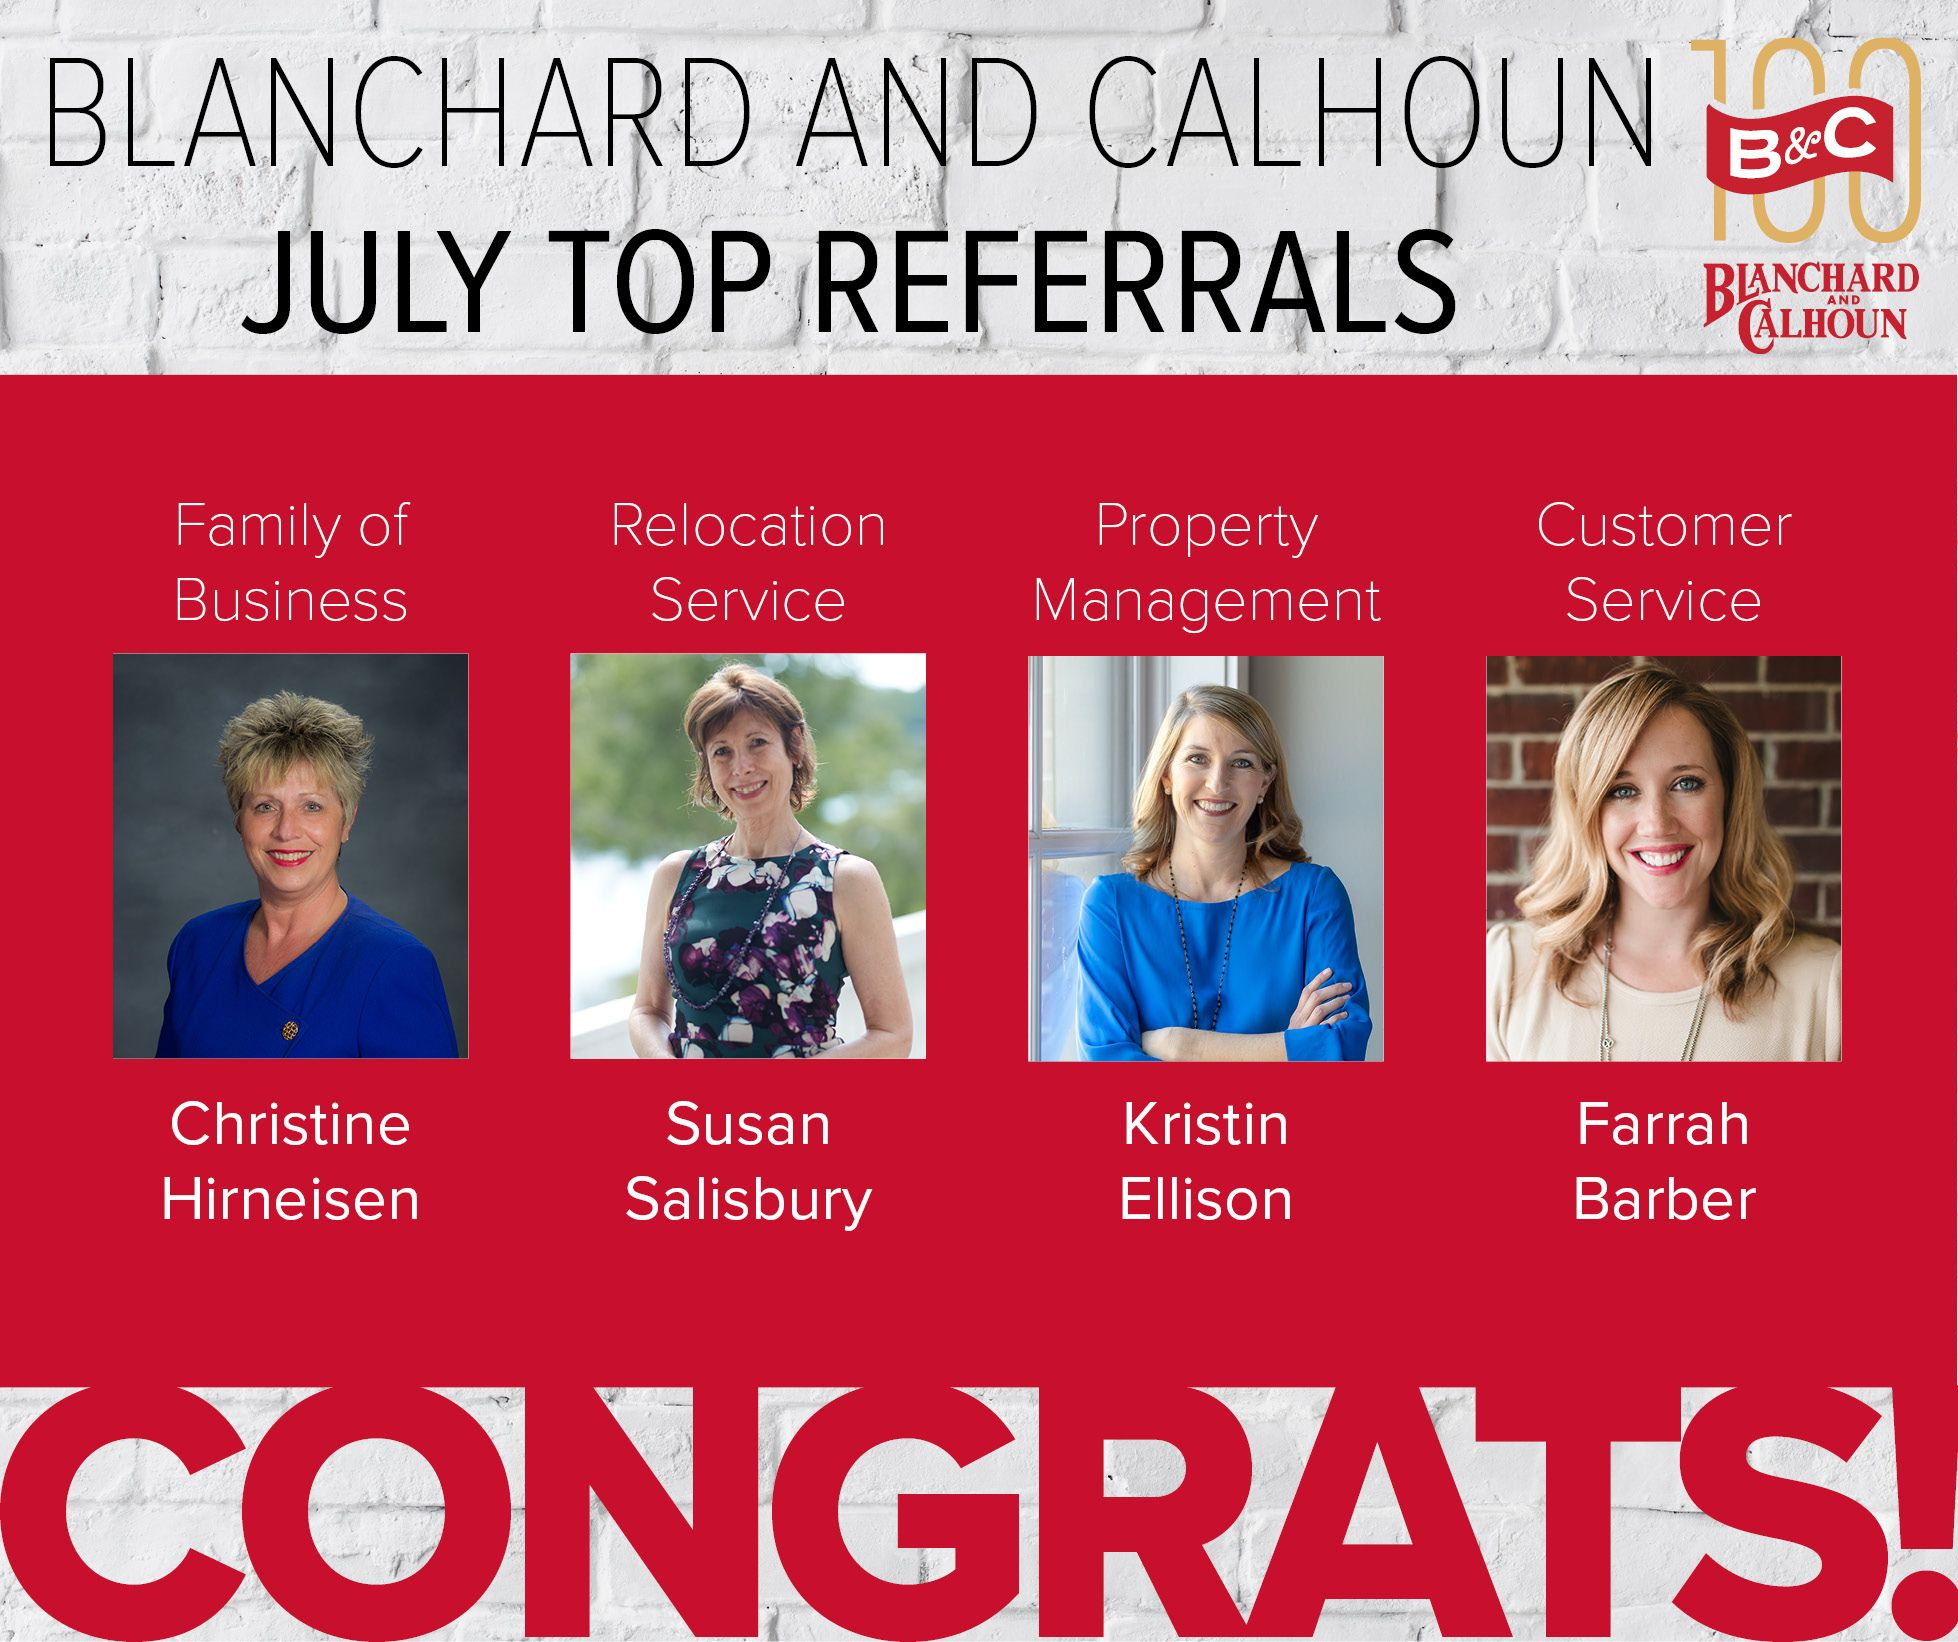 Your Referrals Mean The World To Us Thank You